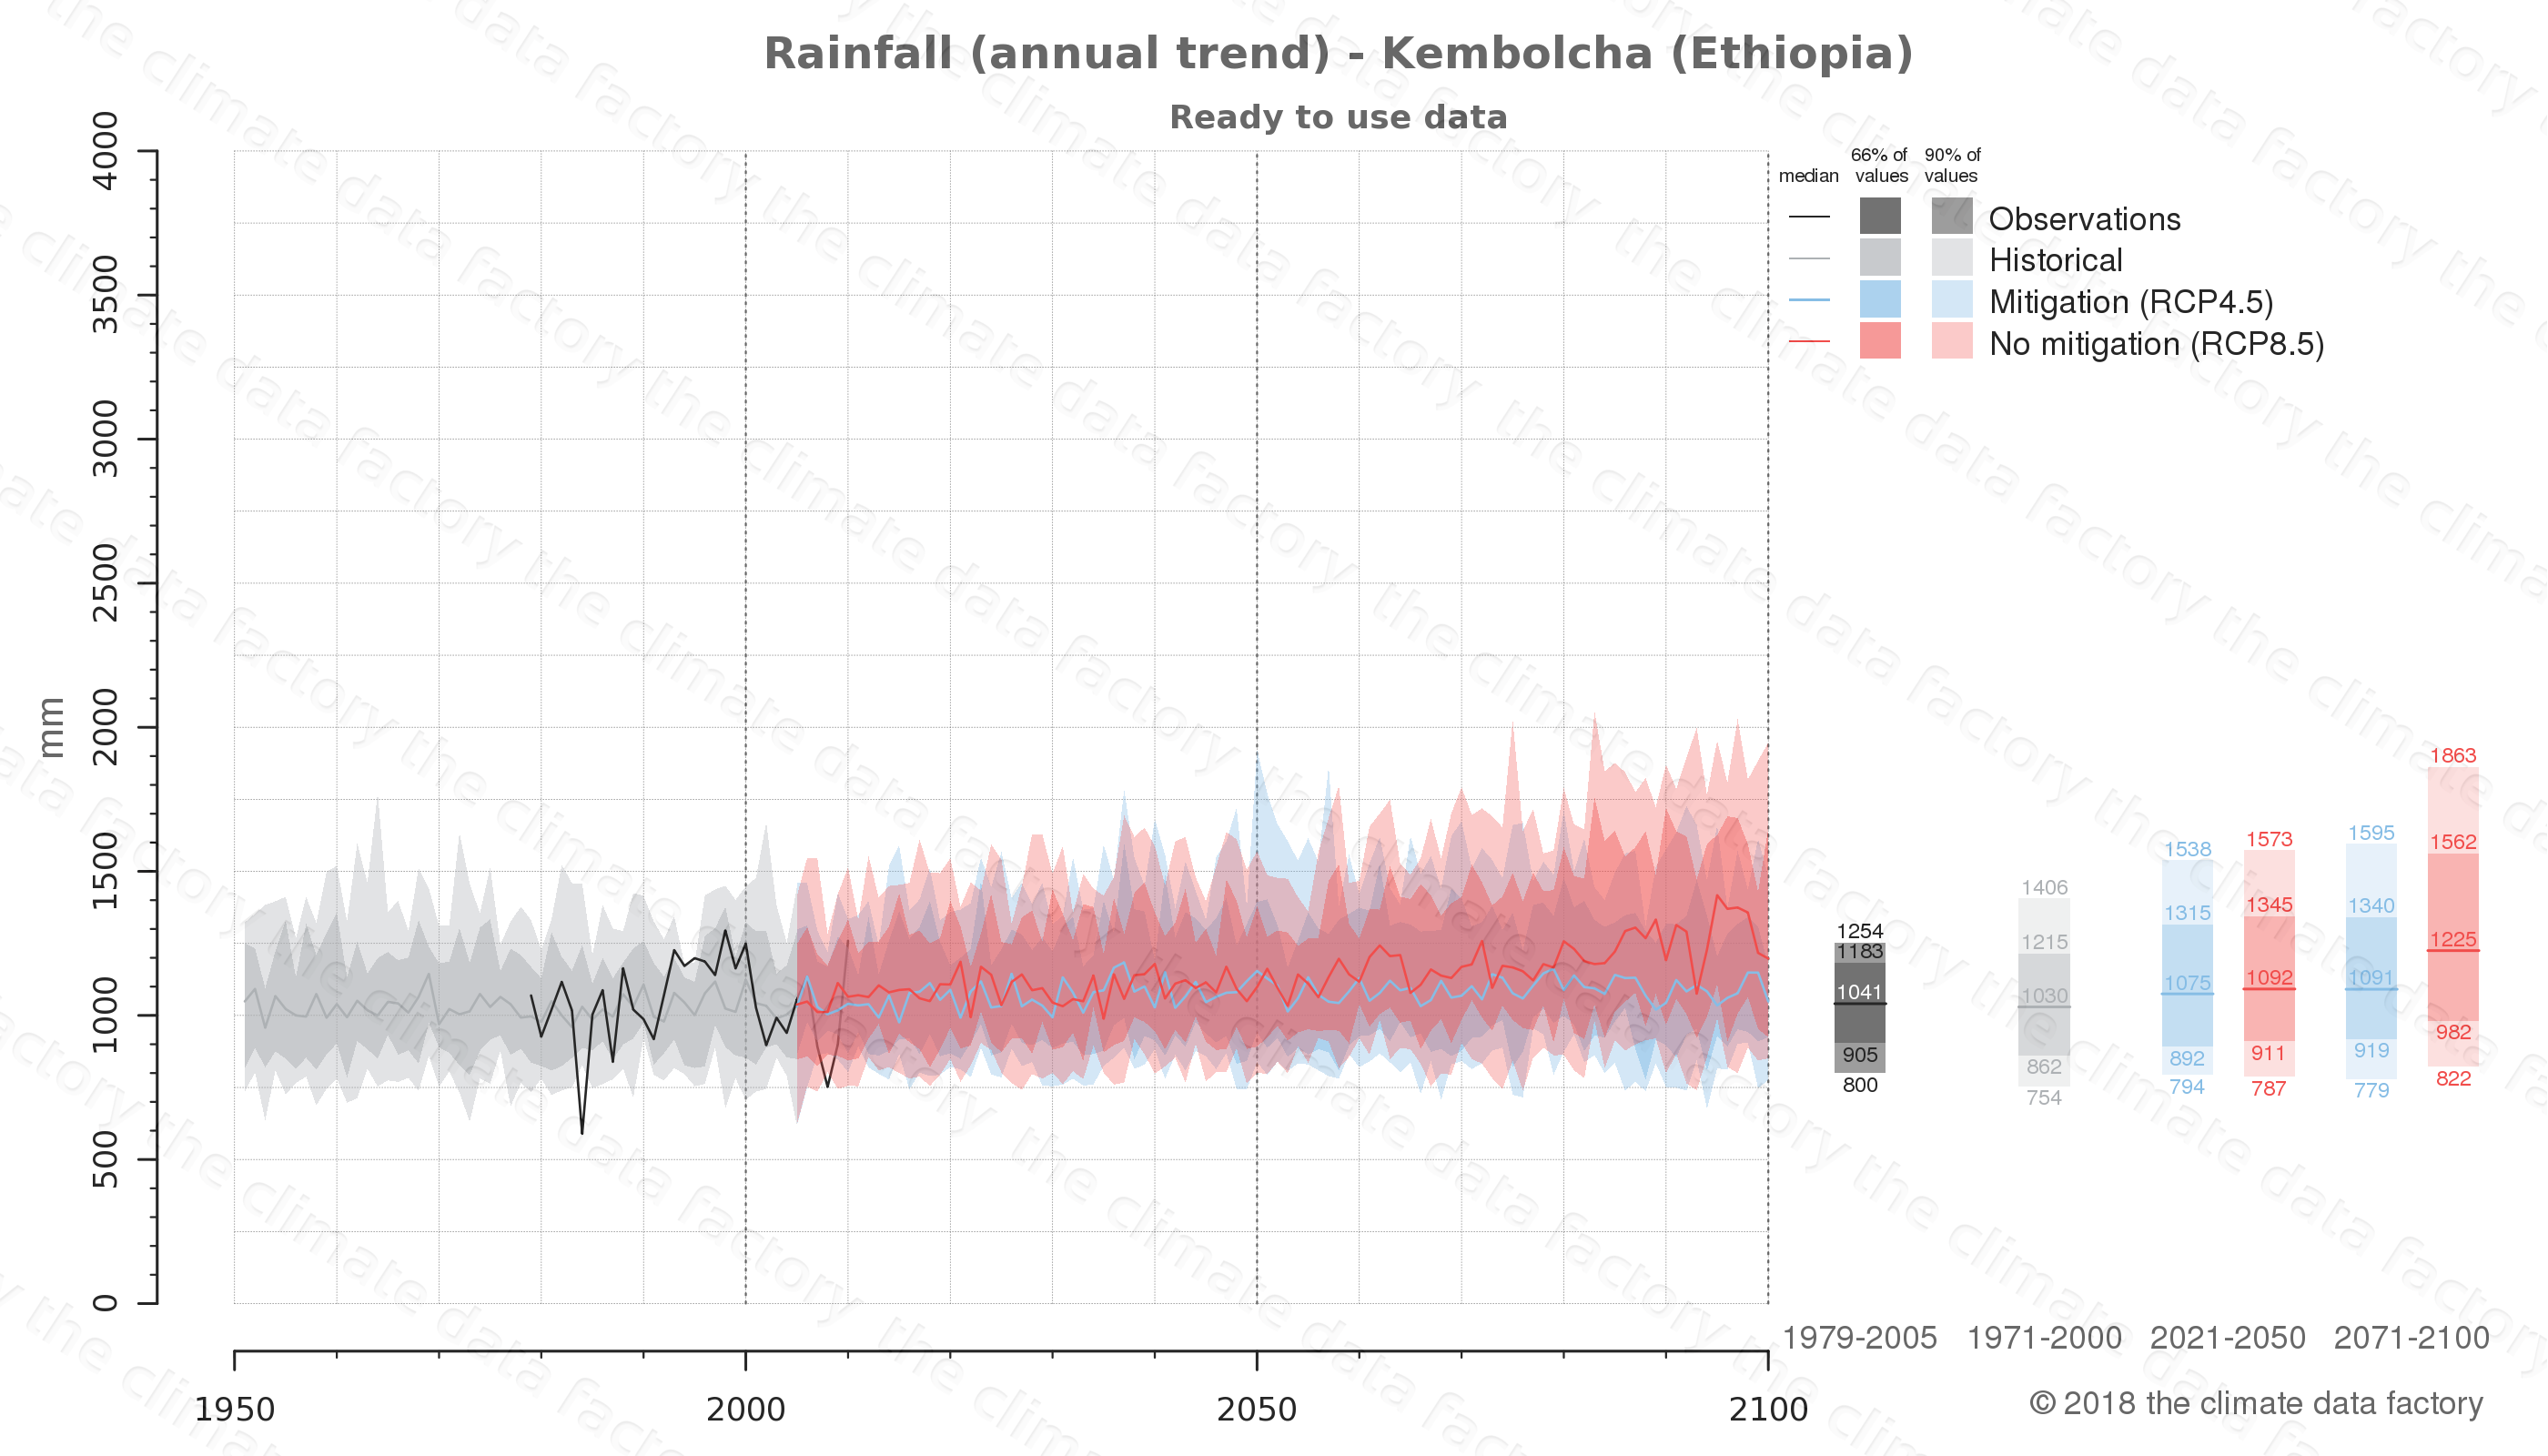 climate change data policy adaptation climate graph city data rainfall kembolcha ethiopia